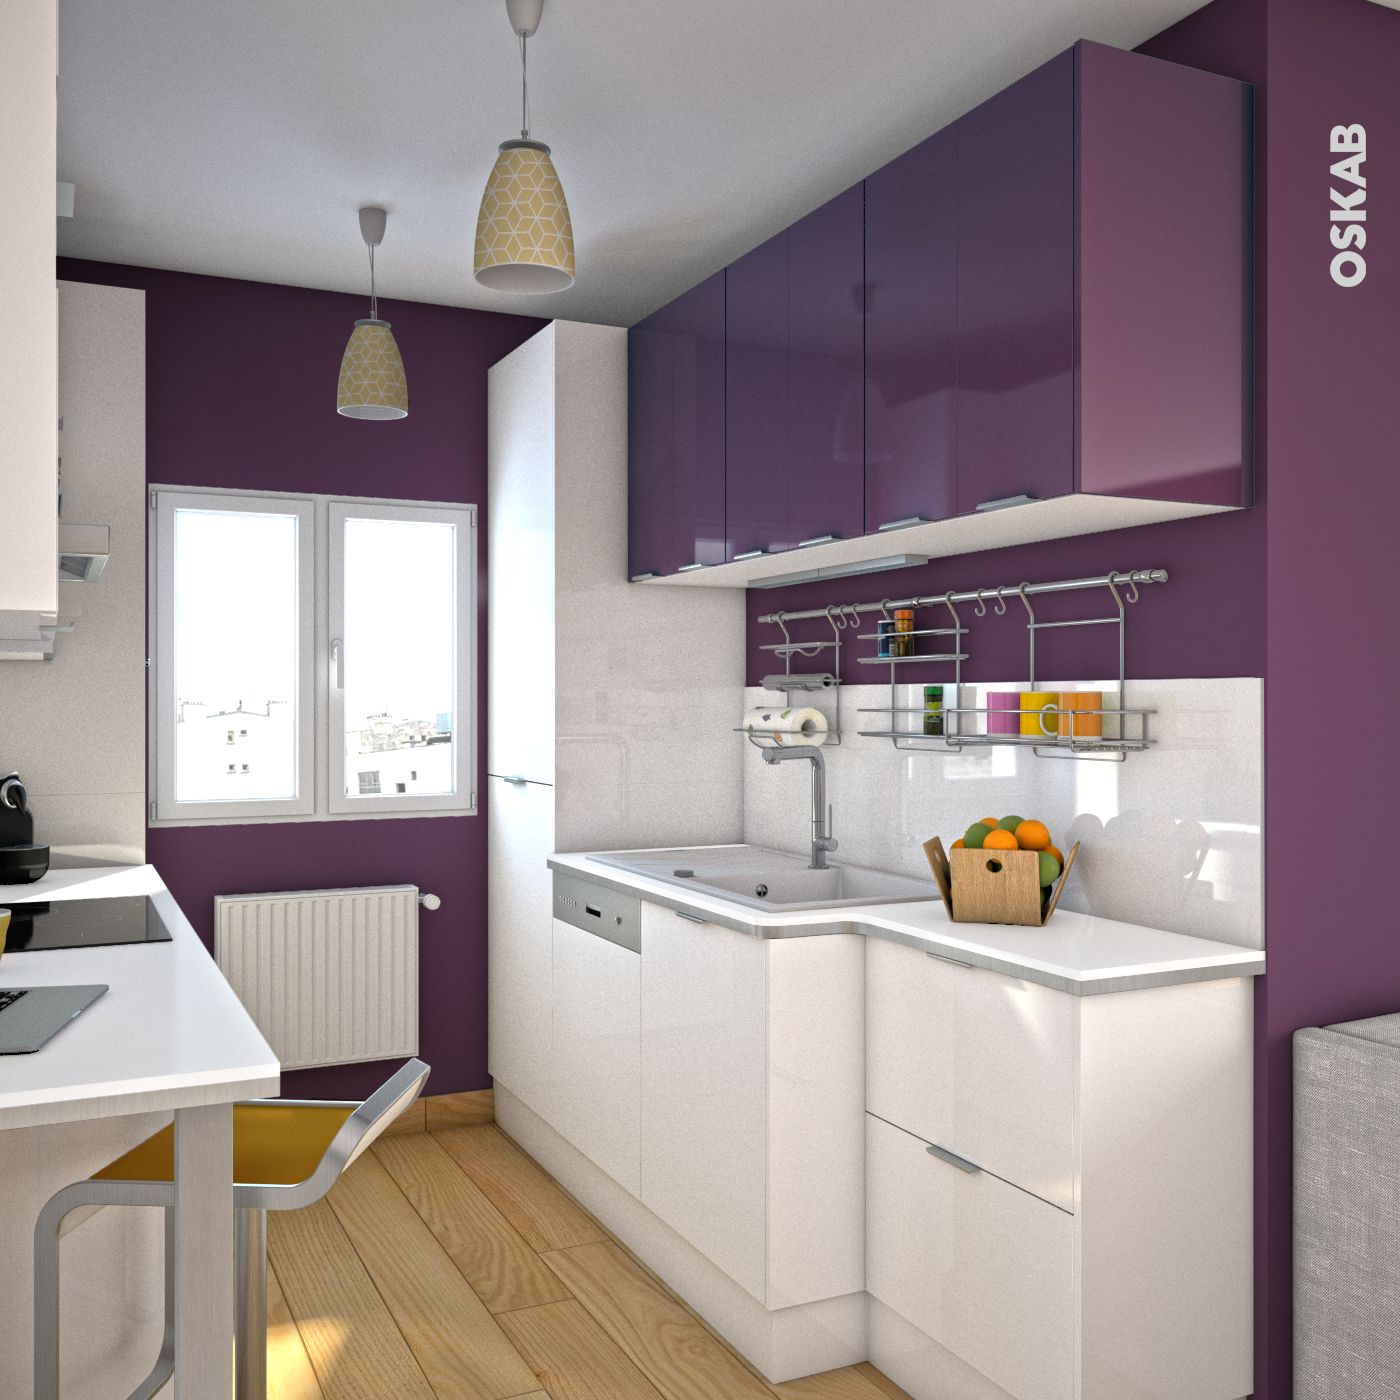 cuisine aubergine mod le keria aubergine brillant pantry. Black Bedroom Furniture Sets. Home Design Ideas